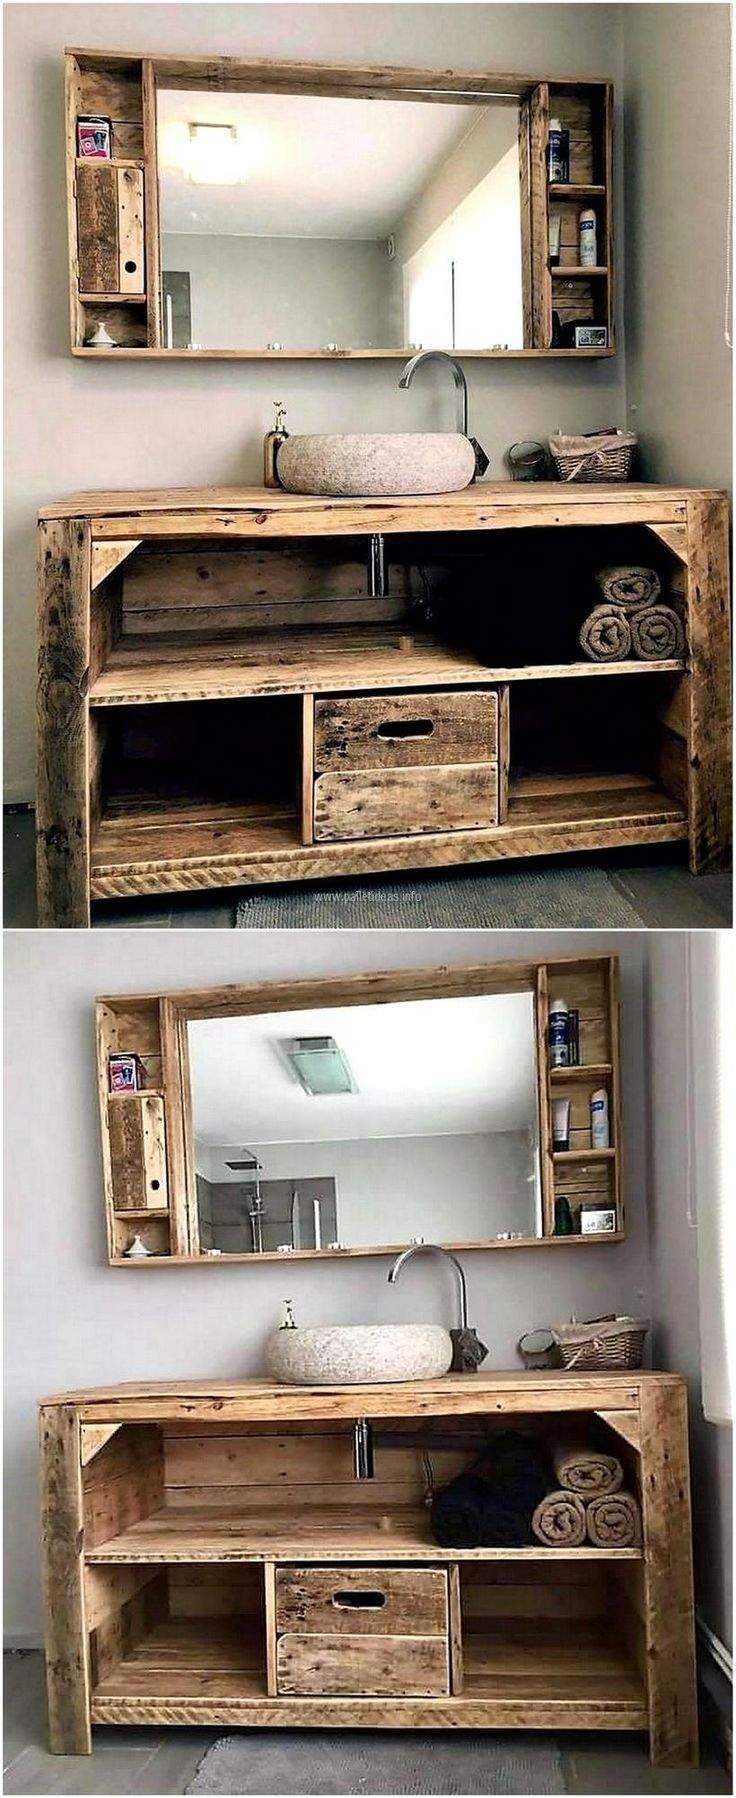 Brilliant 50 Inspiring DIY Ideas With Wooden Pallets  Pallet Wood Projects